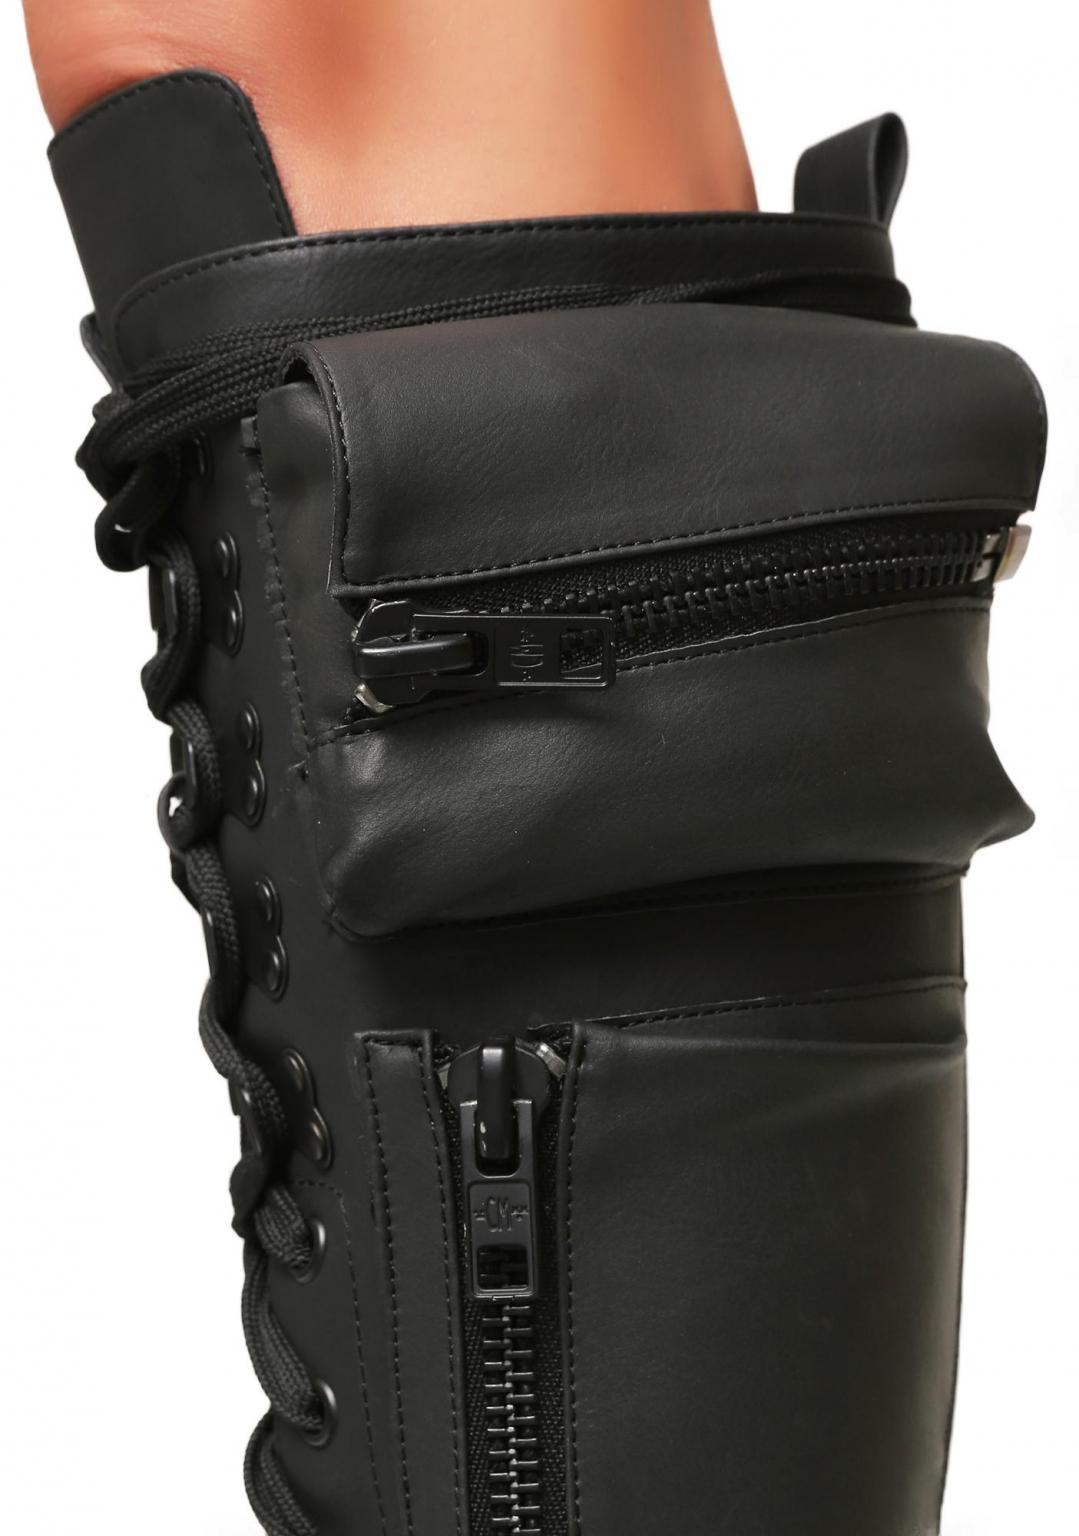 8d4a3fe1a7722 Obsidian Pocket Combat Boots UK SIZE 3 in W2 1UU;W2 Westminster for ...